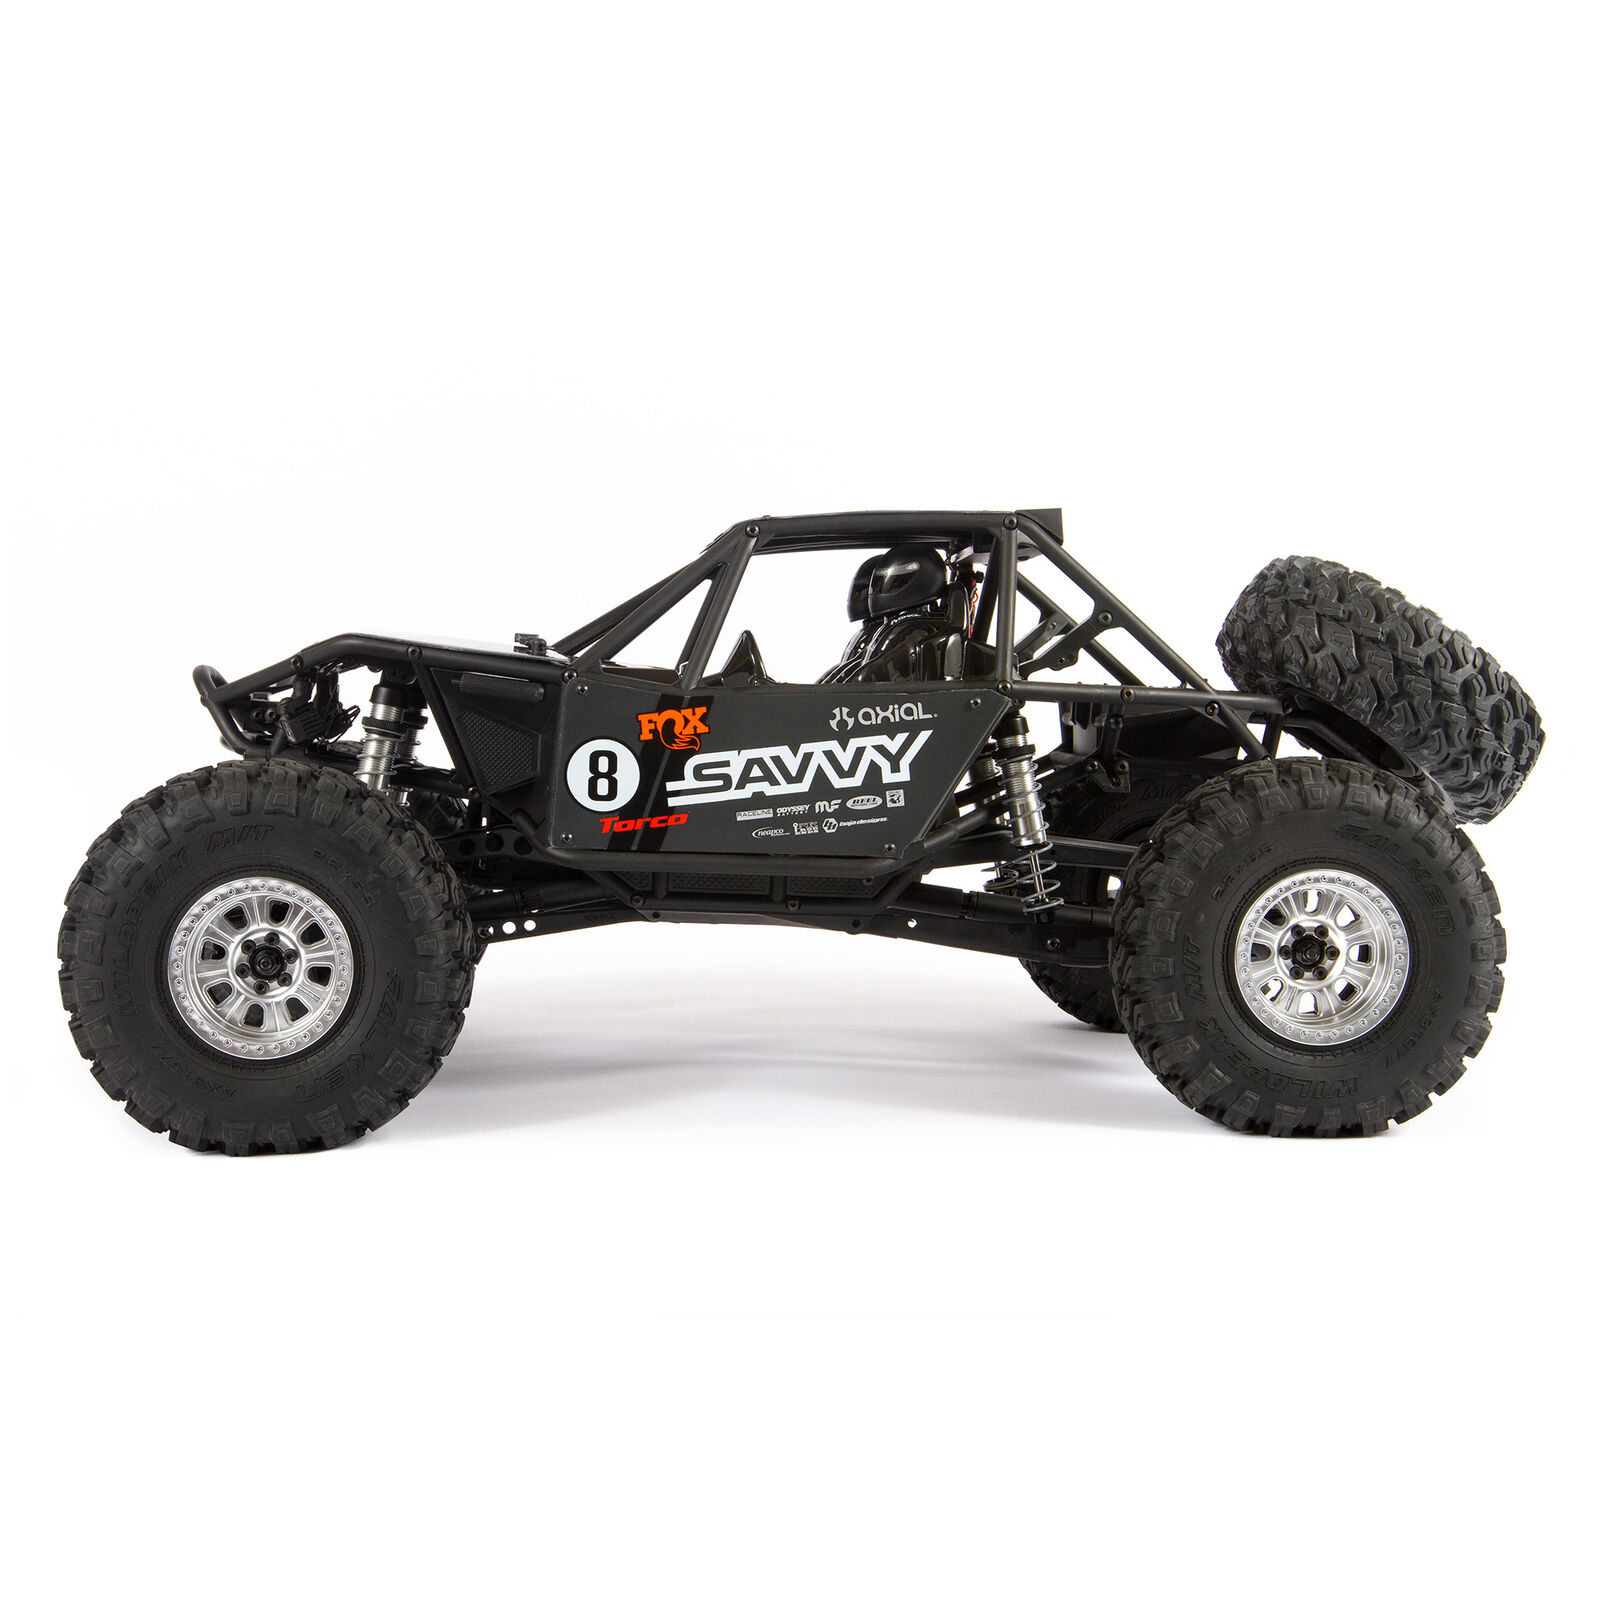 1/10 RR10 Bomber 4WD Rock Racer RTR, Savvy